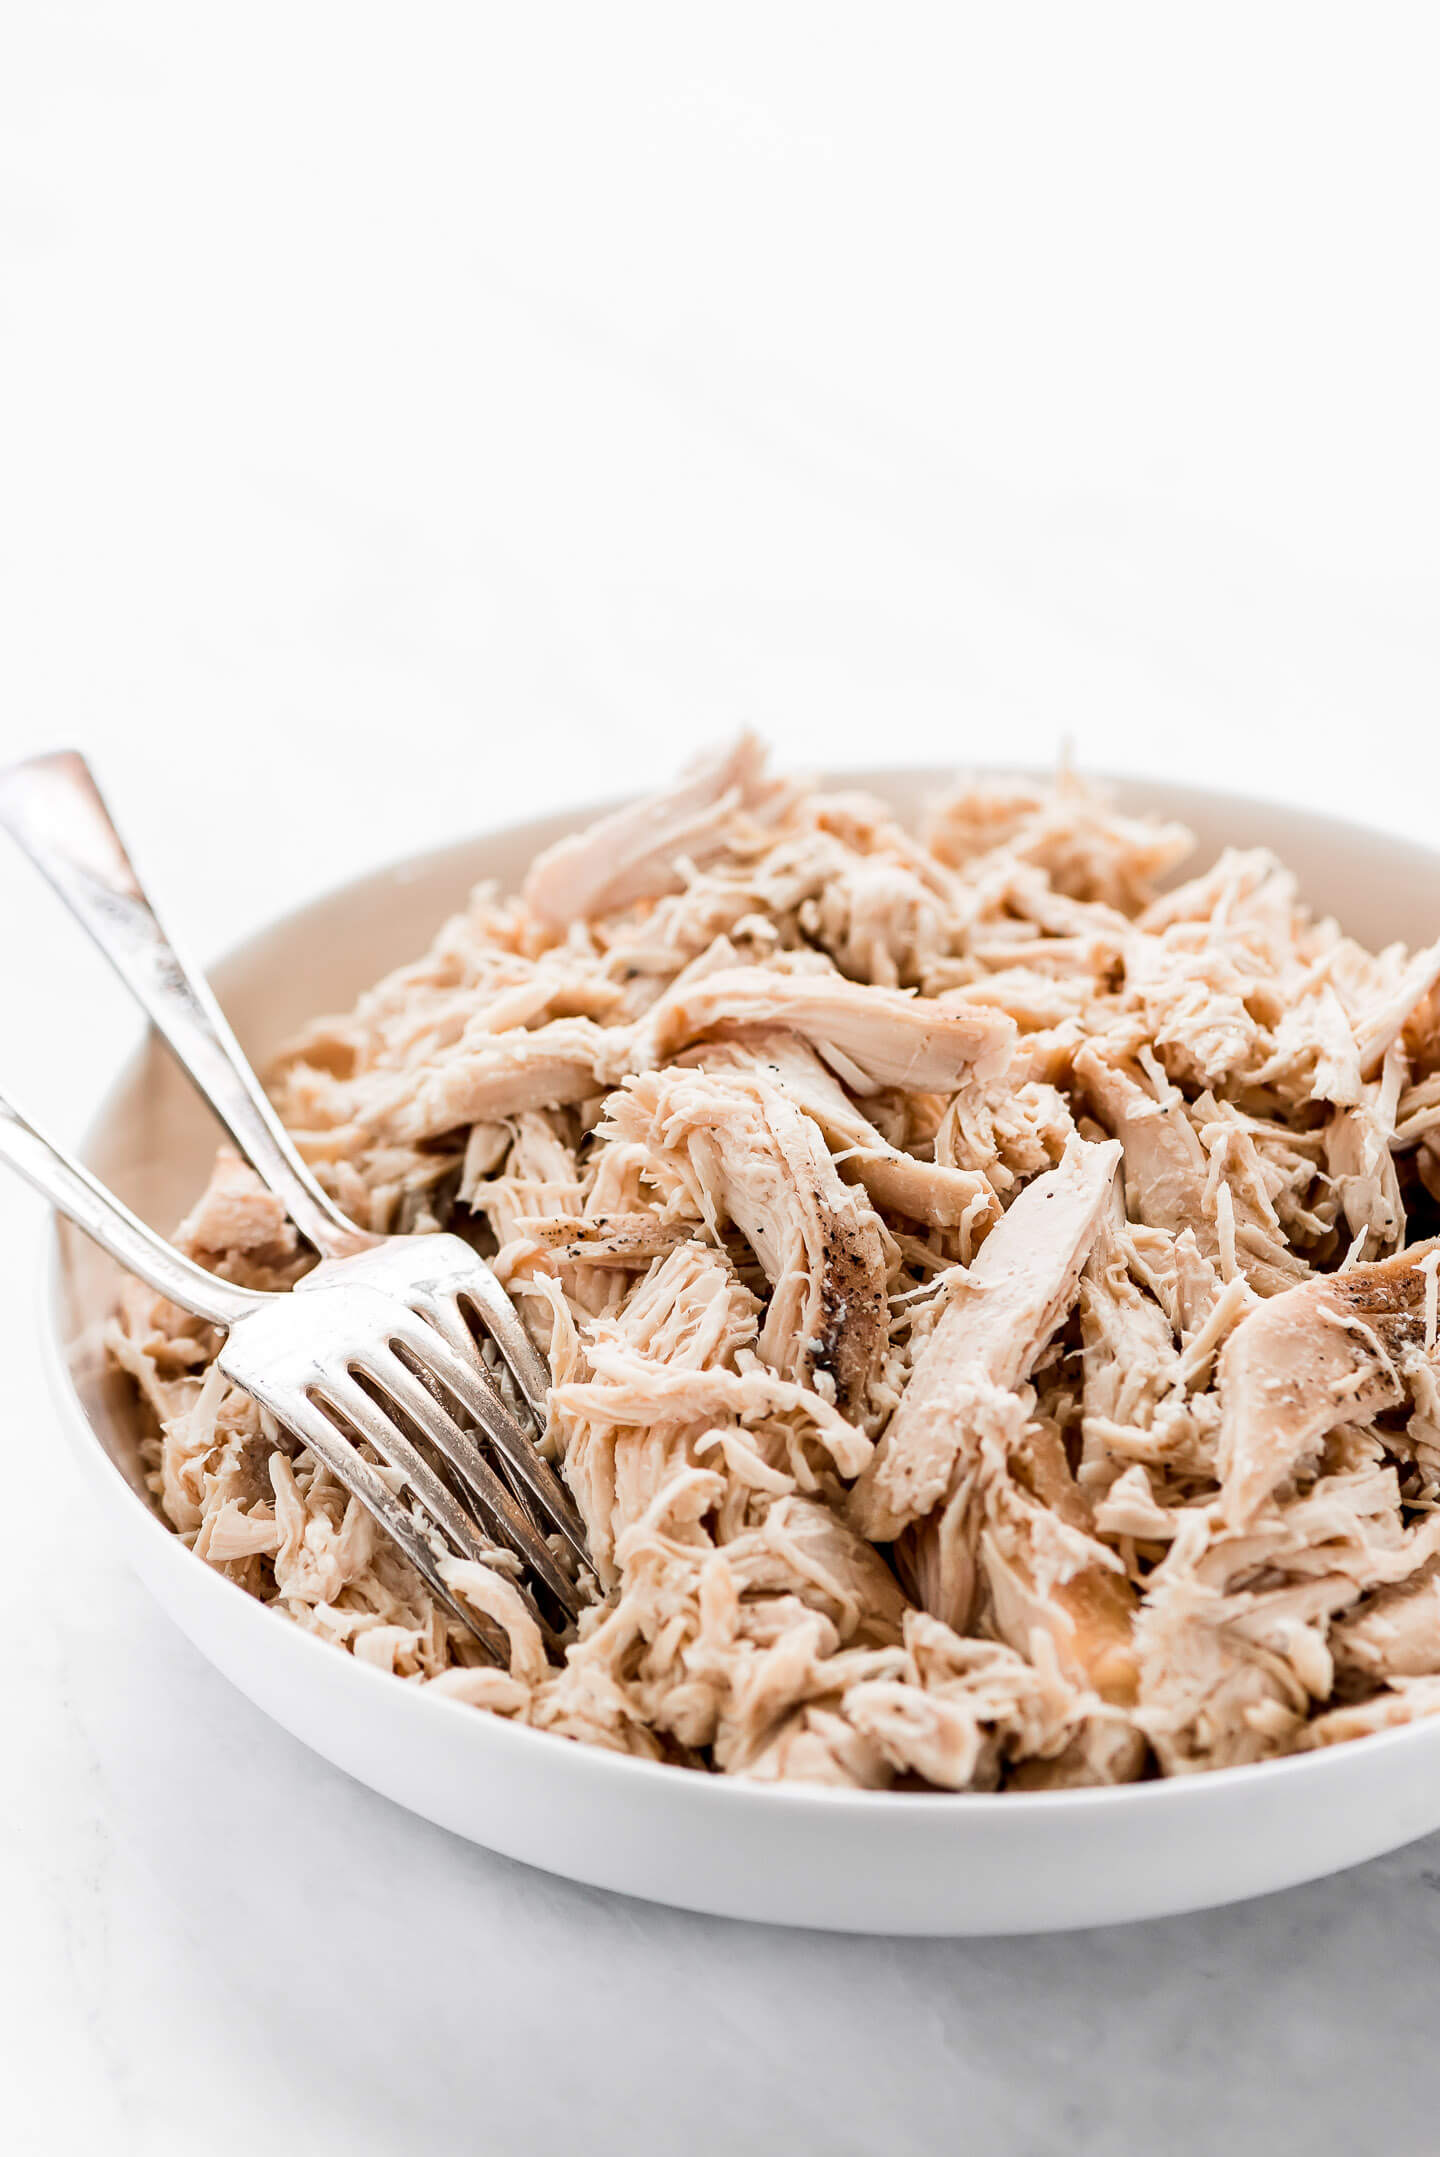 Slow Cooker Shredded Chicken in a large white serving bowl with two forks in the side.